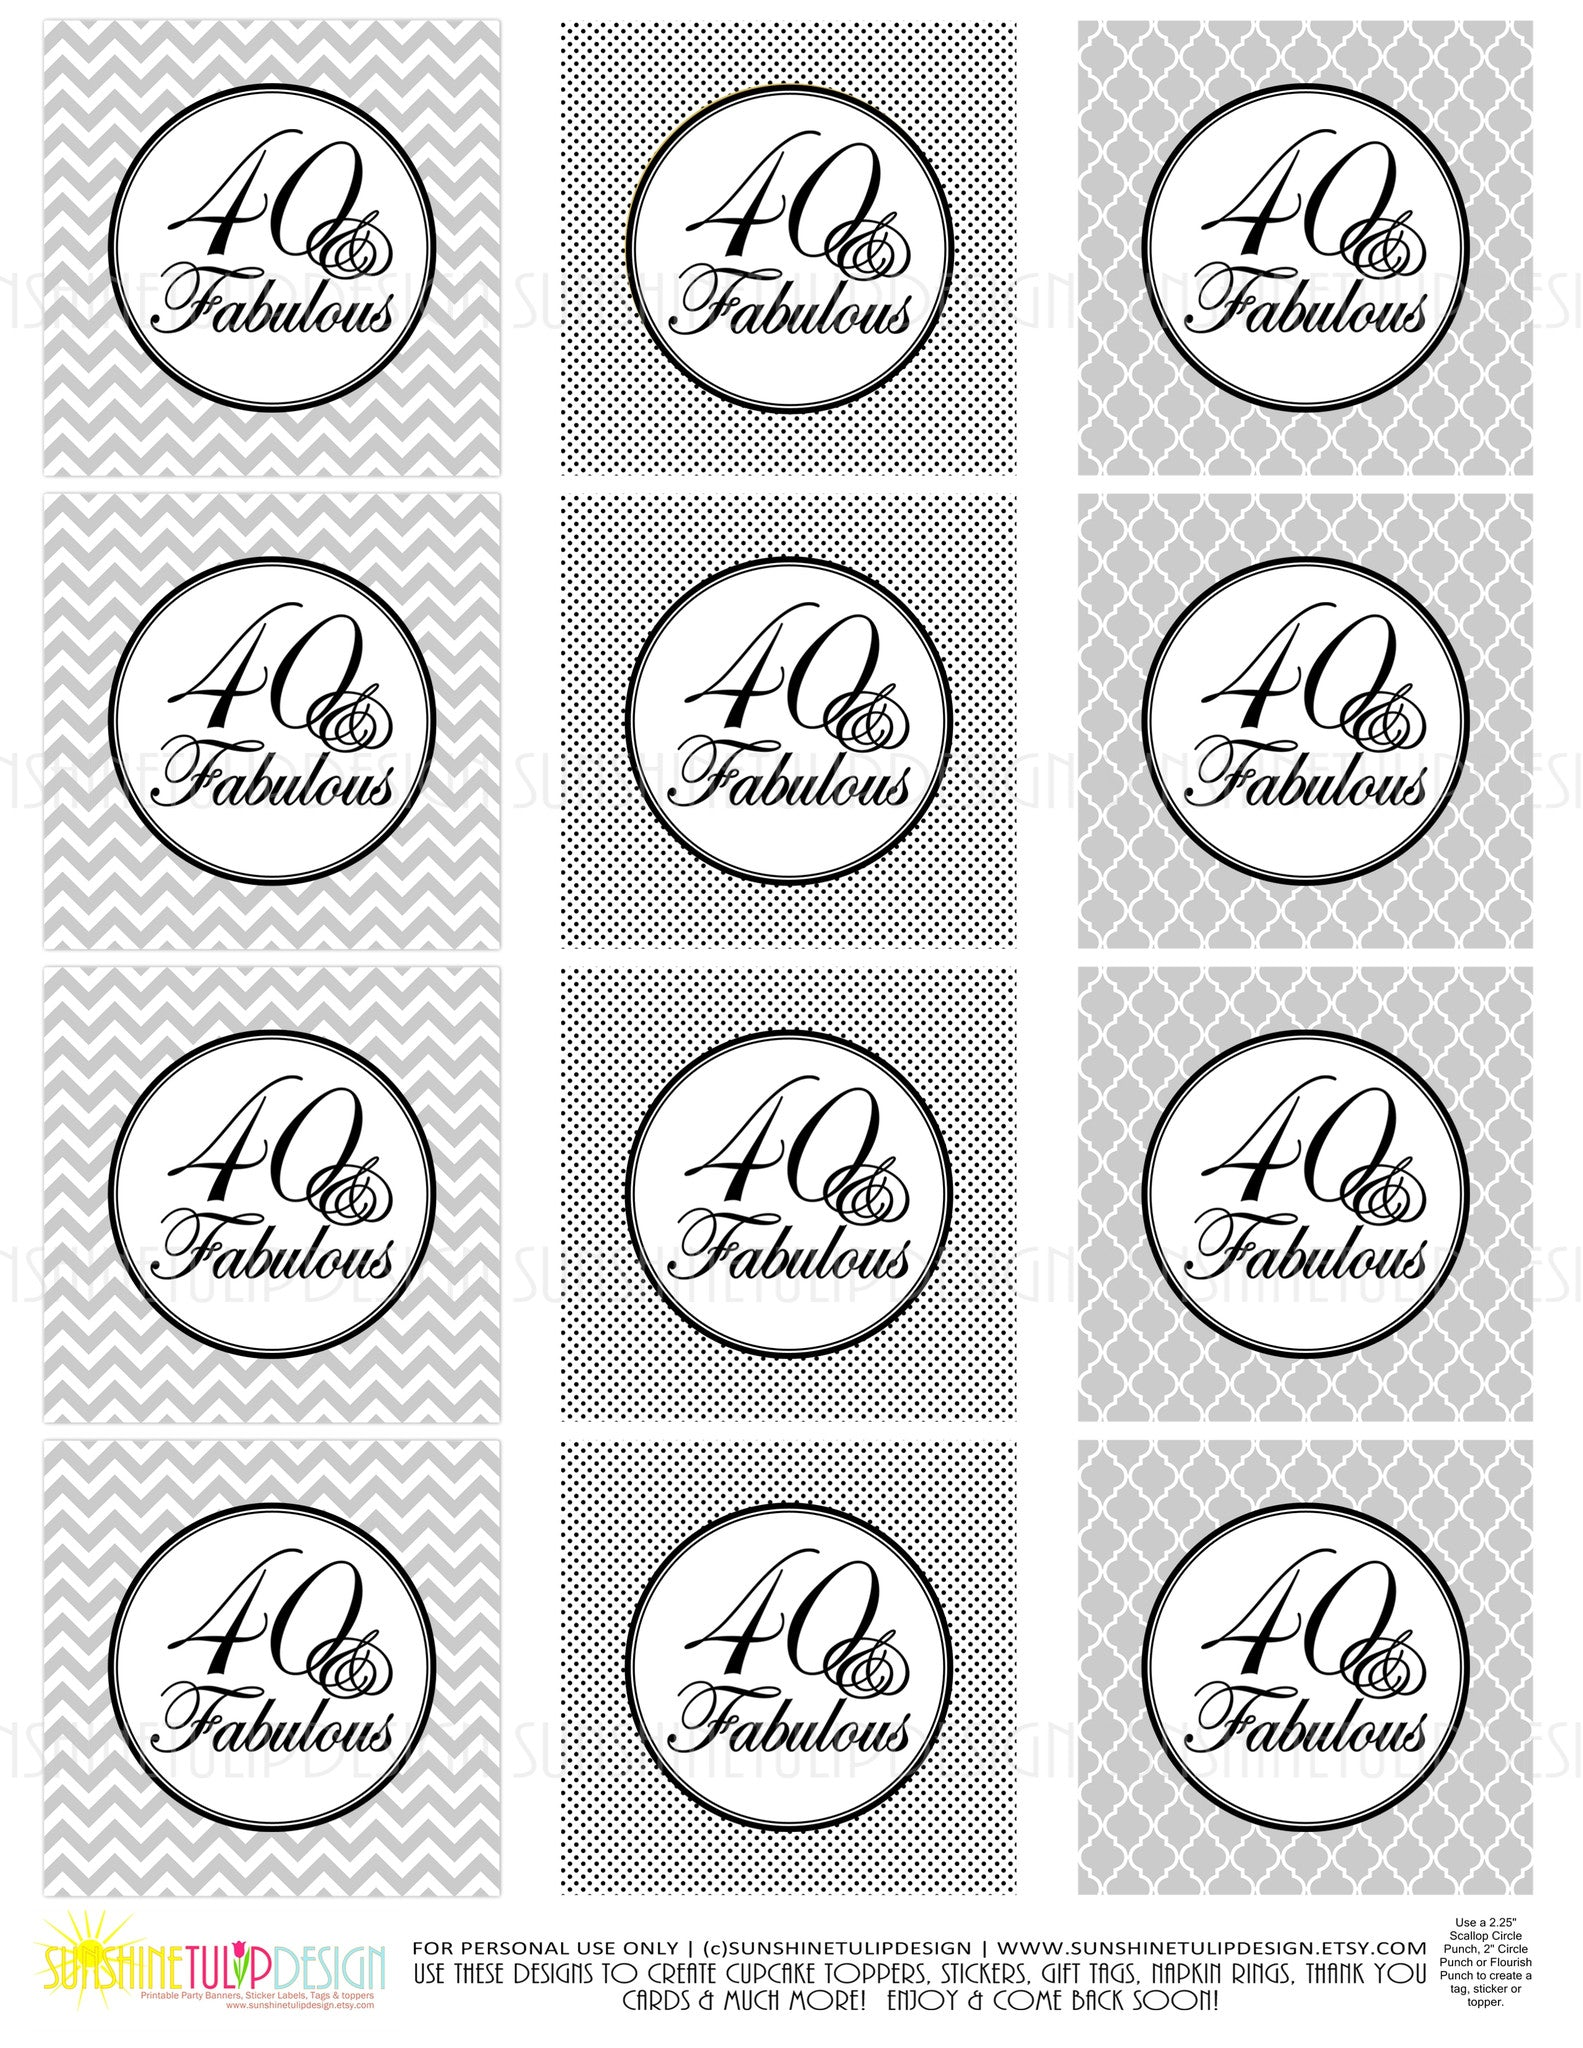 picture relating to Printable Sticker Labels identify Printable 40 and Amazing Black Grey Birthday Cupcake Toppers, Sticker Labels Bash Choose Tags